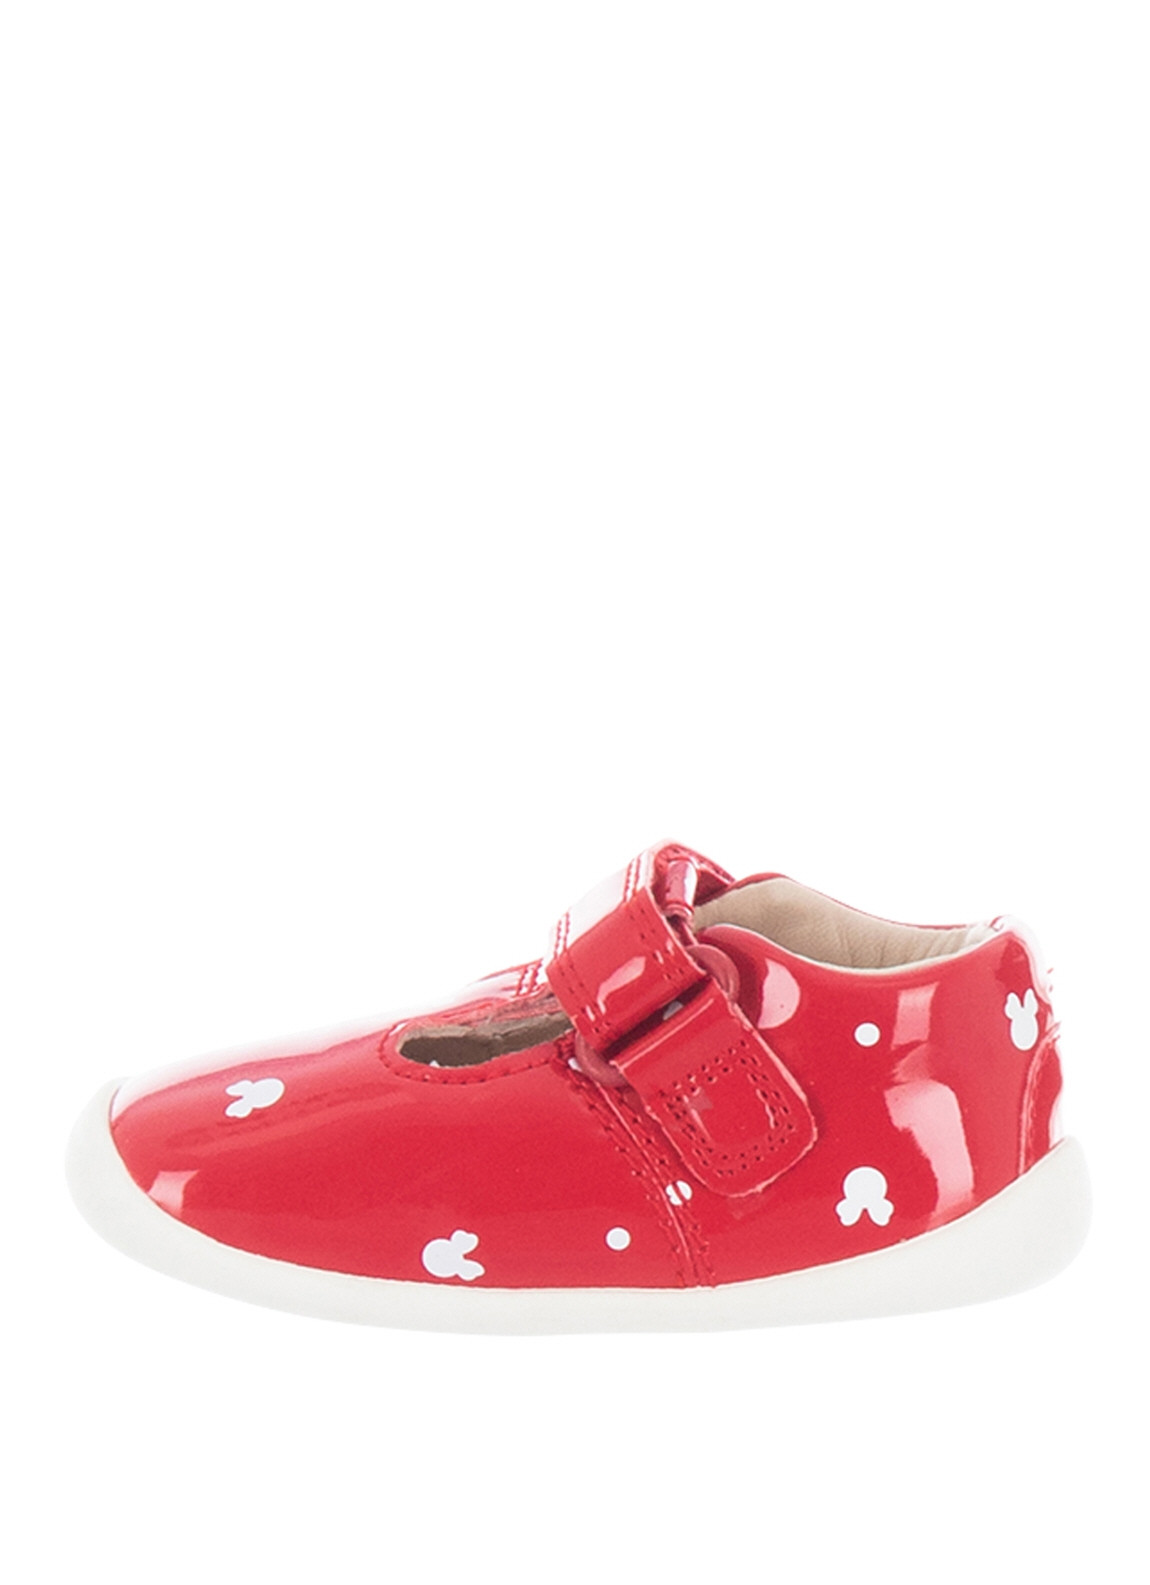 73fd5f51b2 Clarks Toddler Minnie Mouse First Shoes, Red | McElhinneys